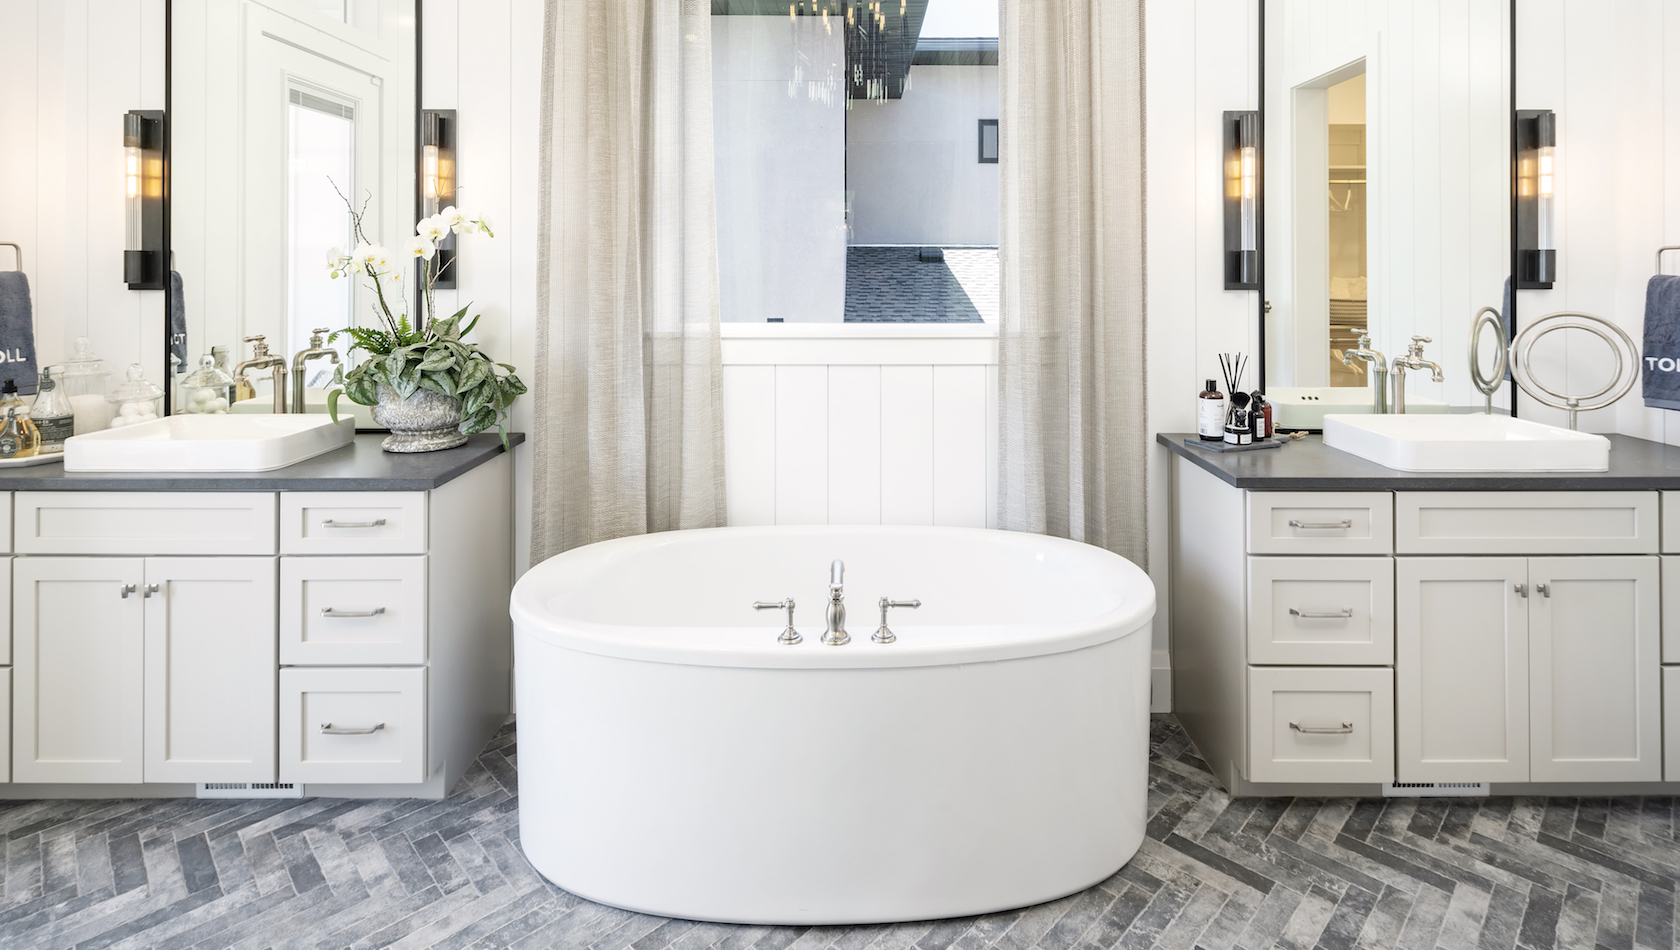 14 Obsession Worthy Bathroom Fixtures By Kohler Build